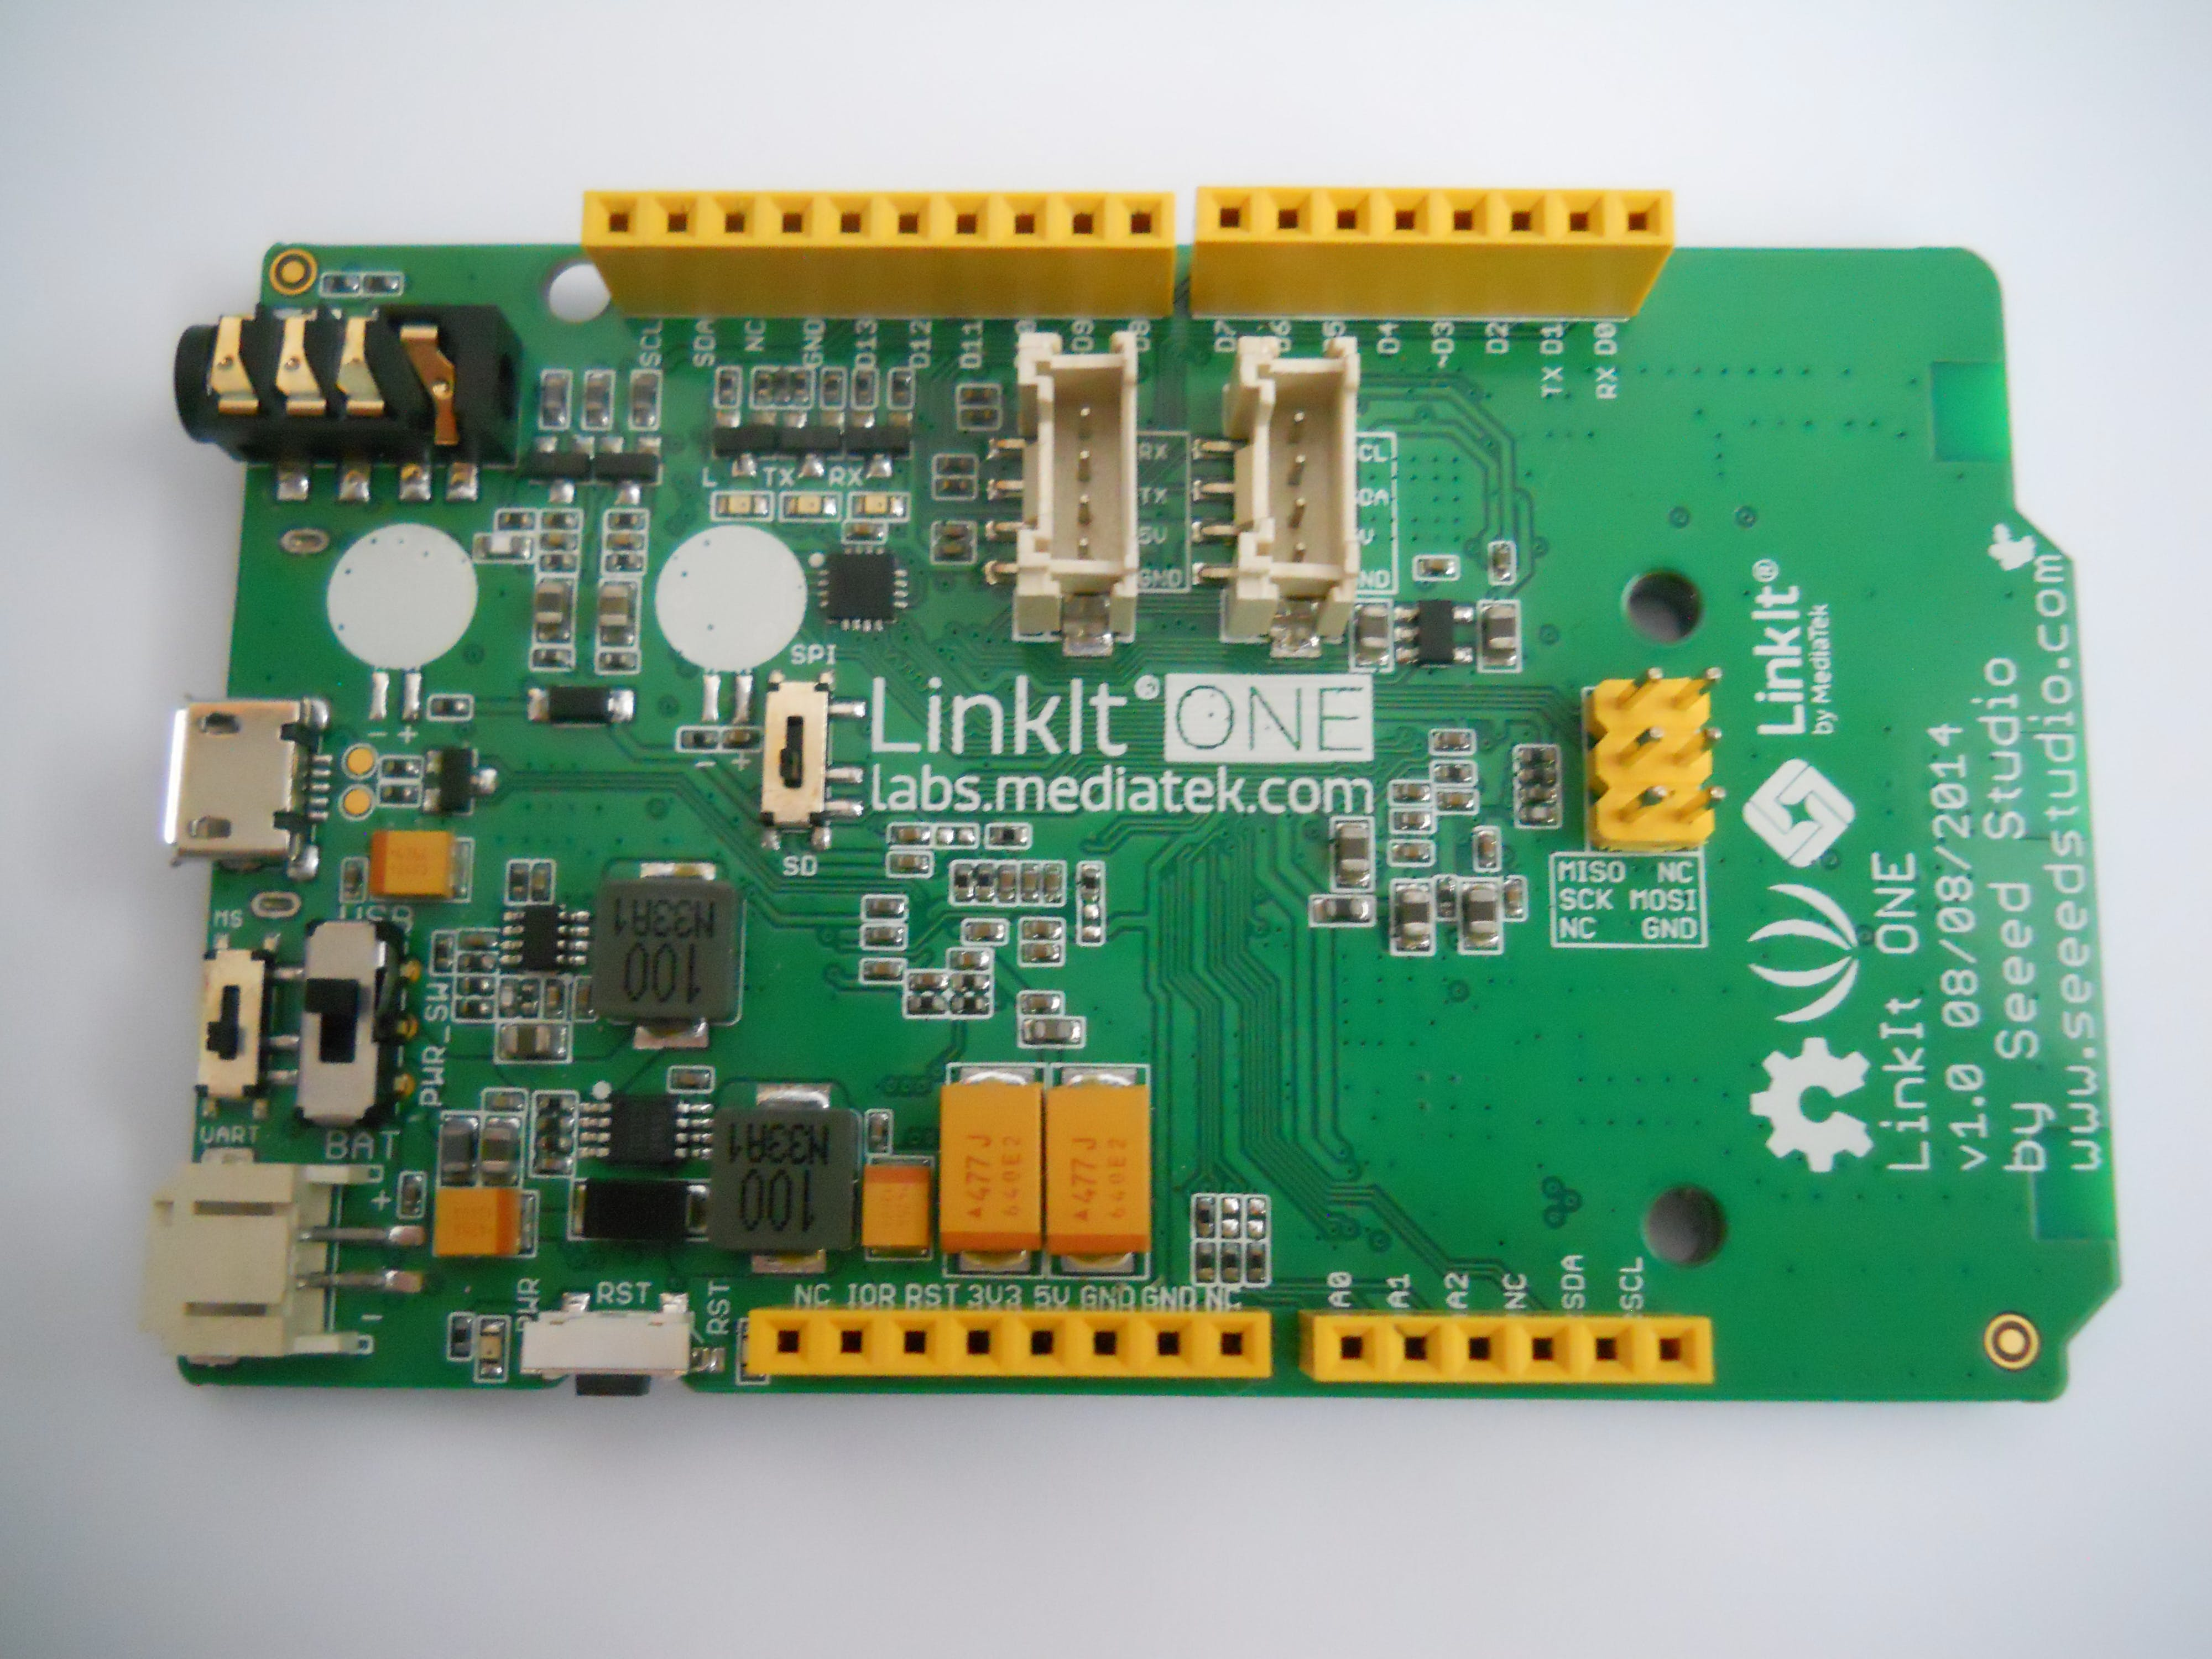 The front view of the board.